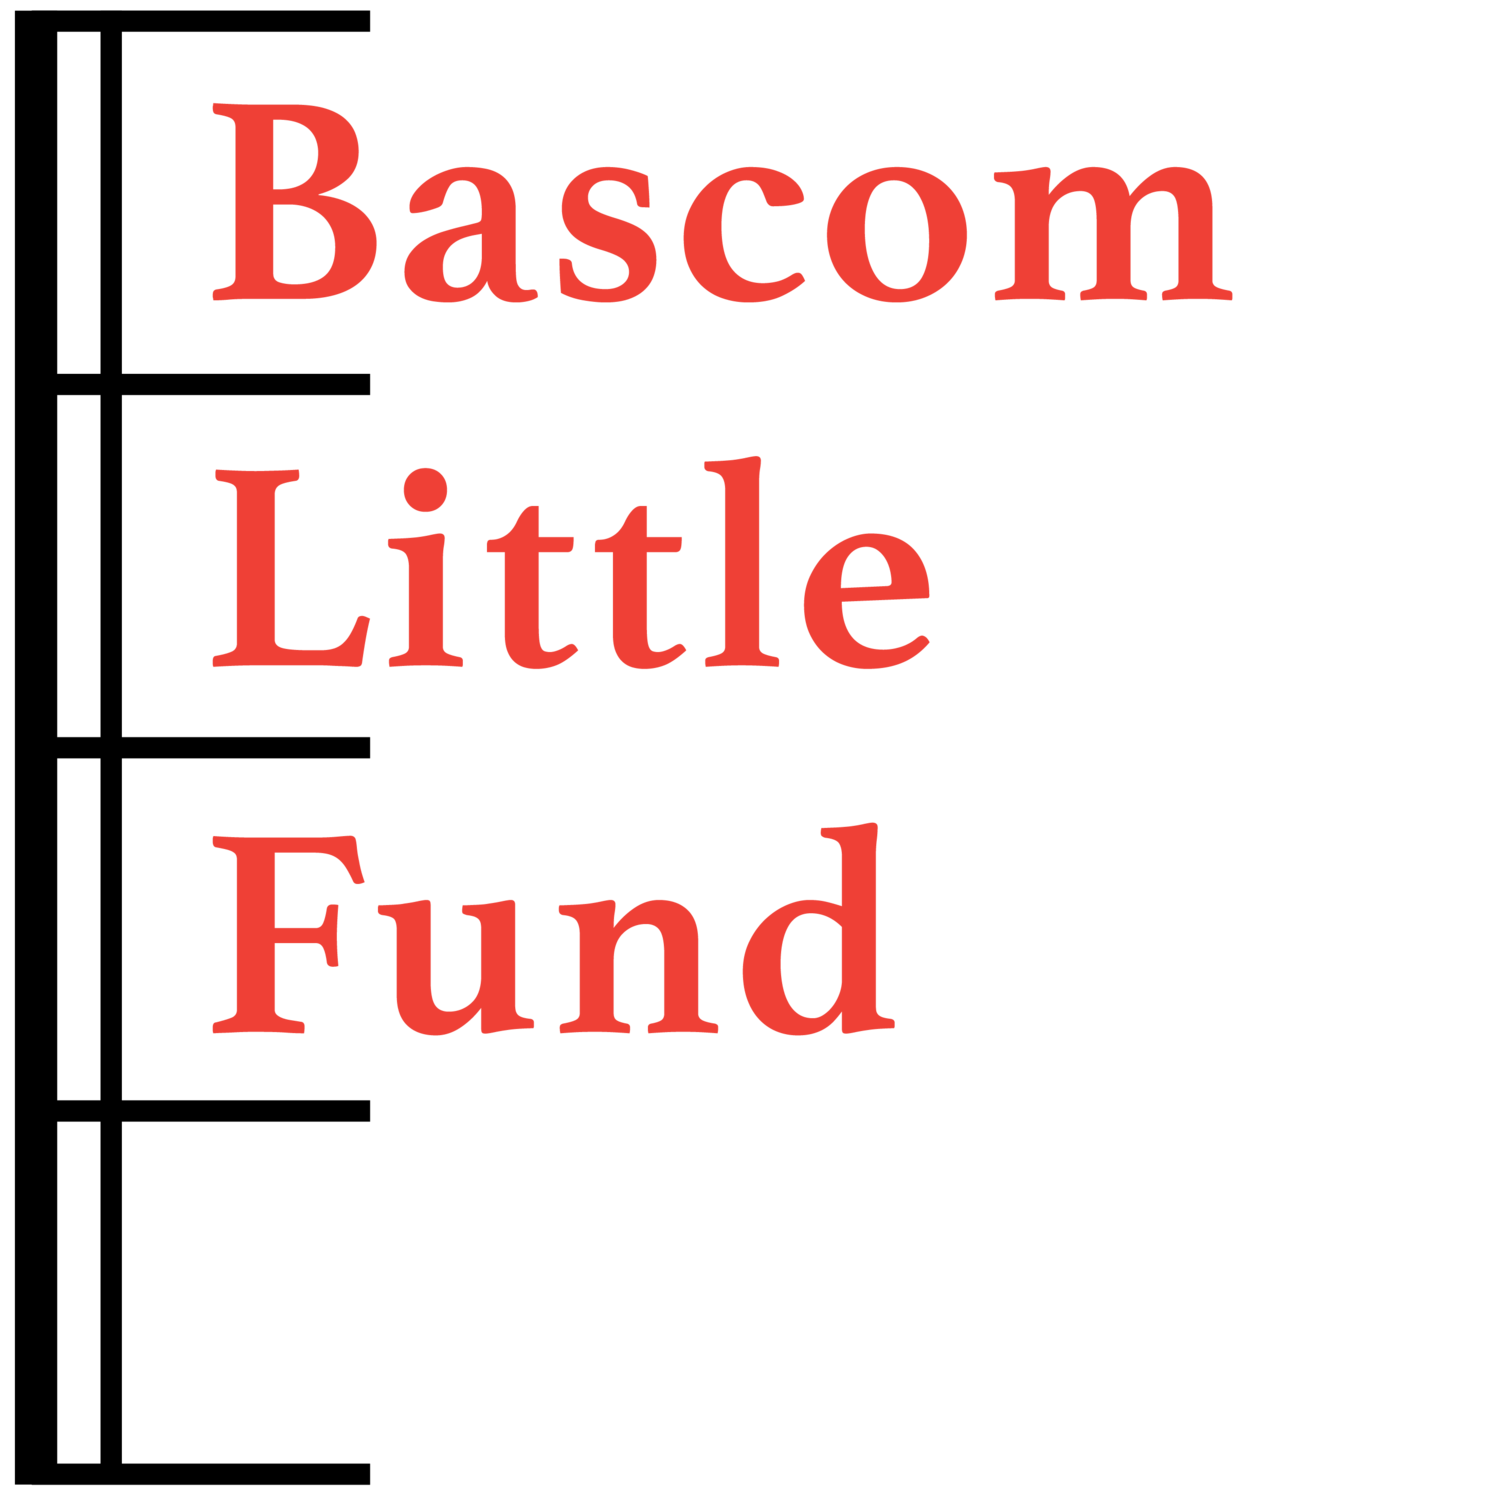 Bascom Little Fund